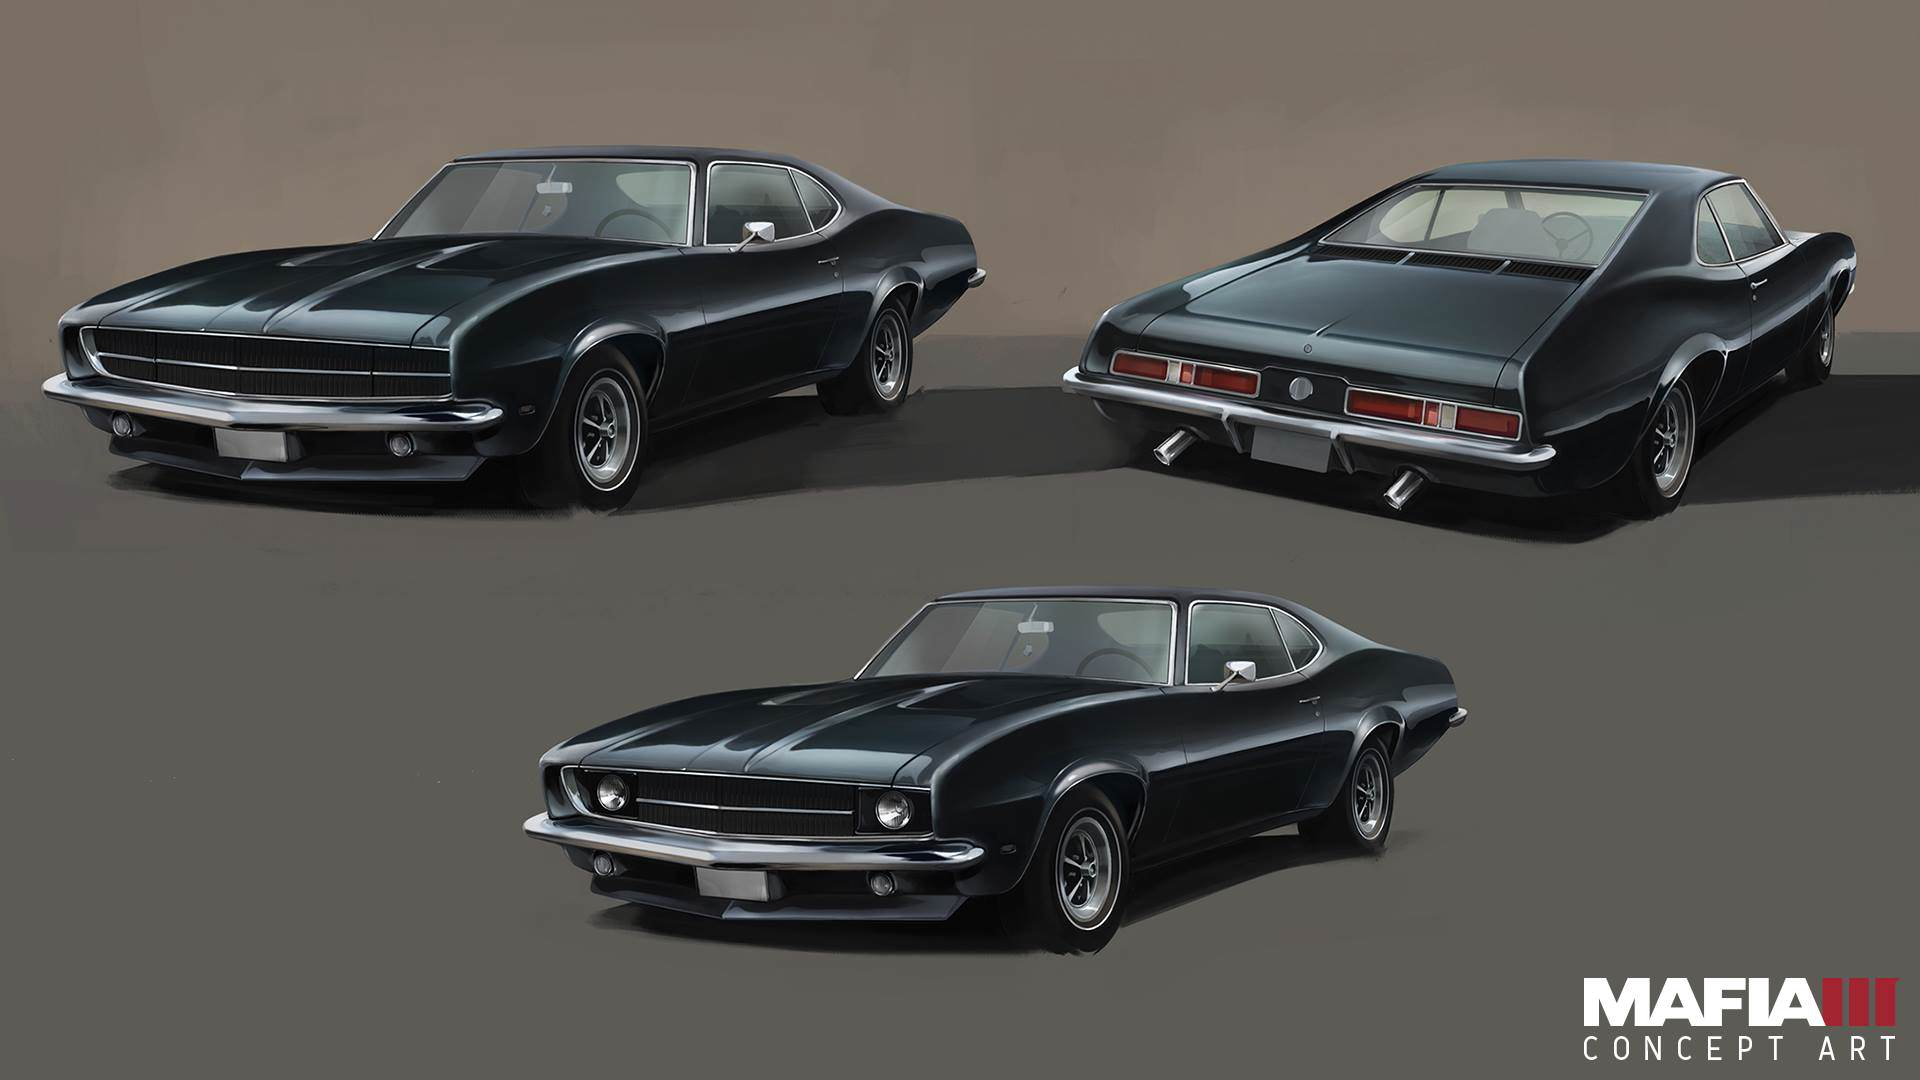 Check Out Every Awesome Piece Of Mafia 3 Concept Art Released mafia3 lincolns muscle car artwork